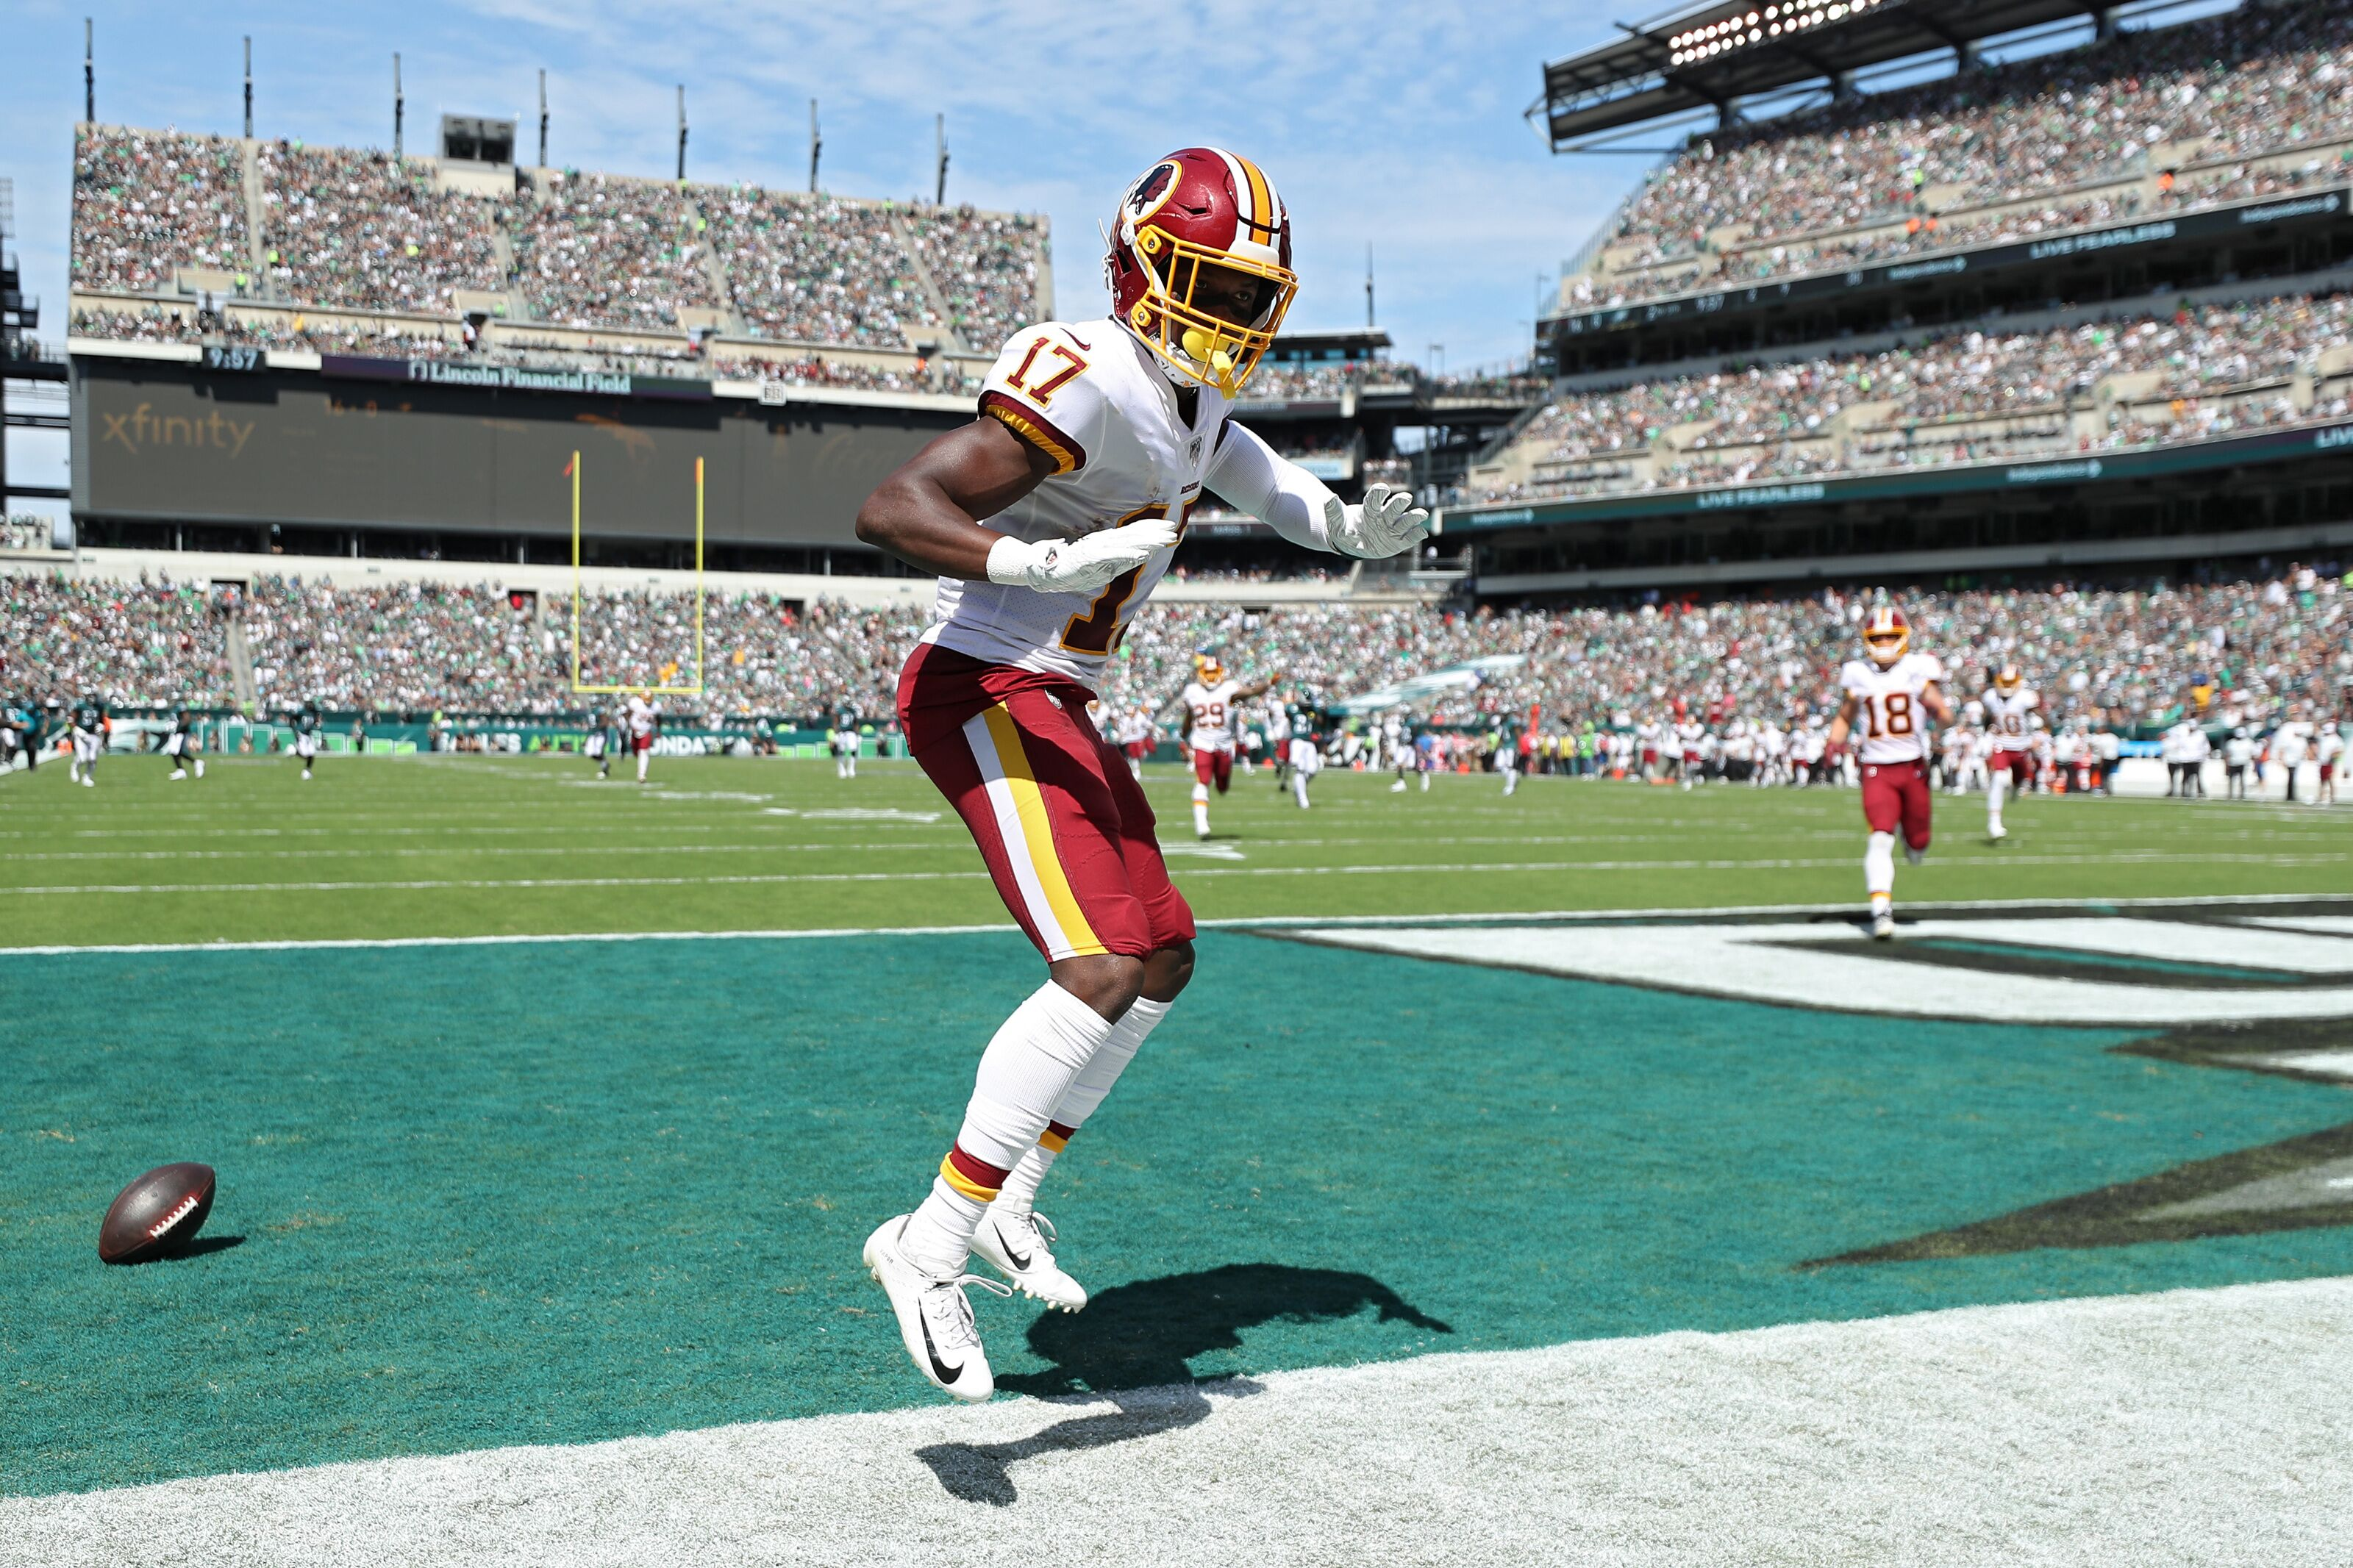 wholesale dealer cdfa4 27273 Washington Redskins: Terry McLaurin is tearing it up through ...